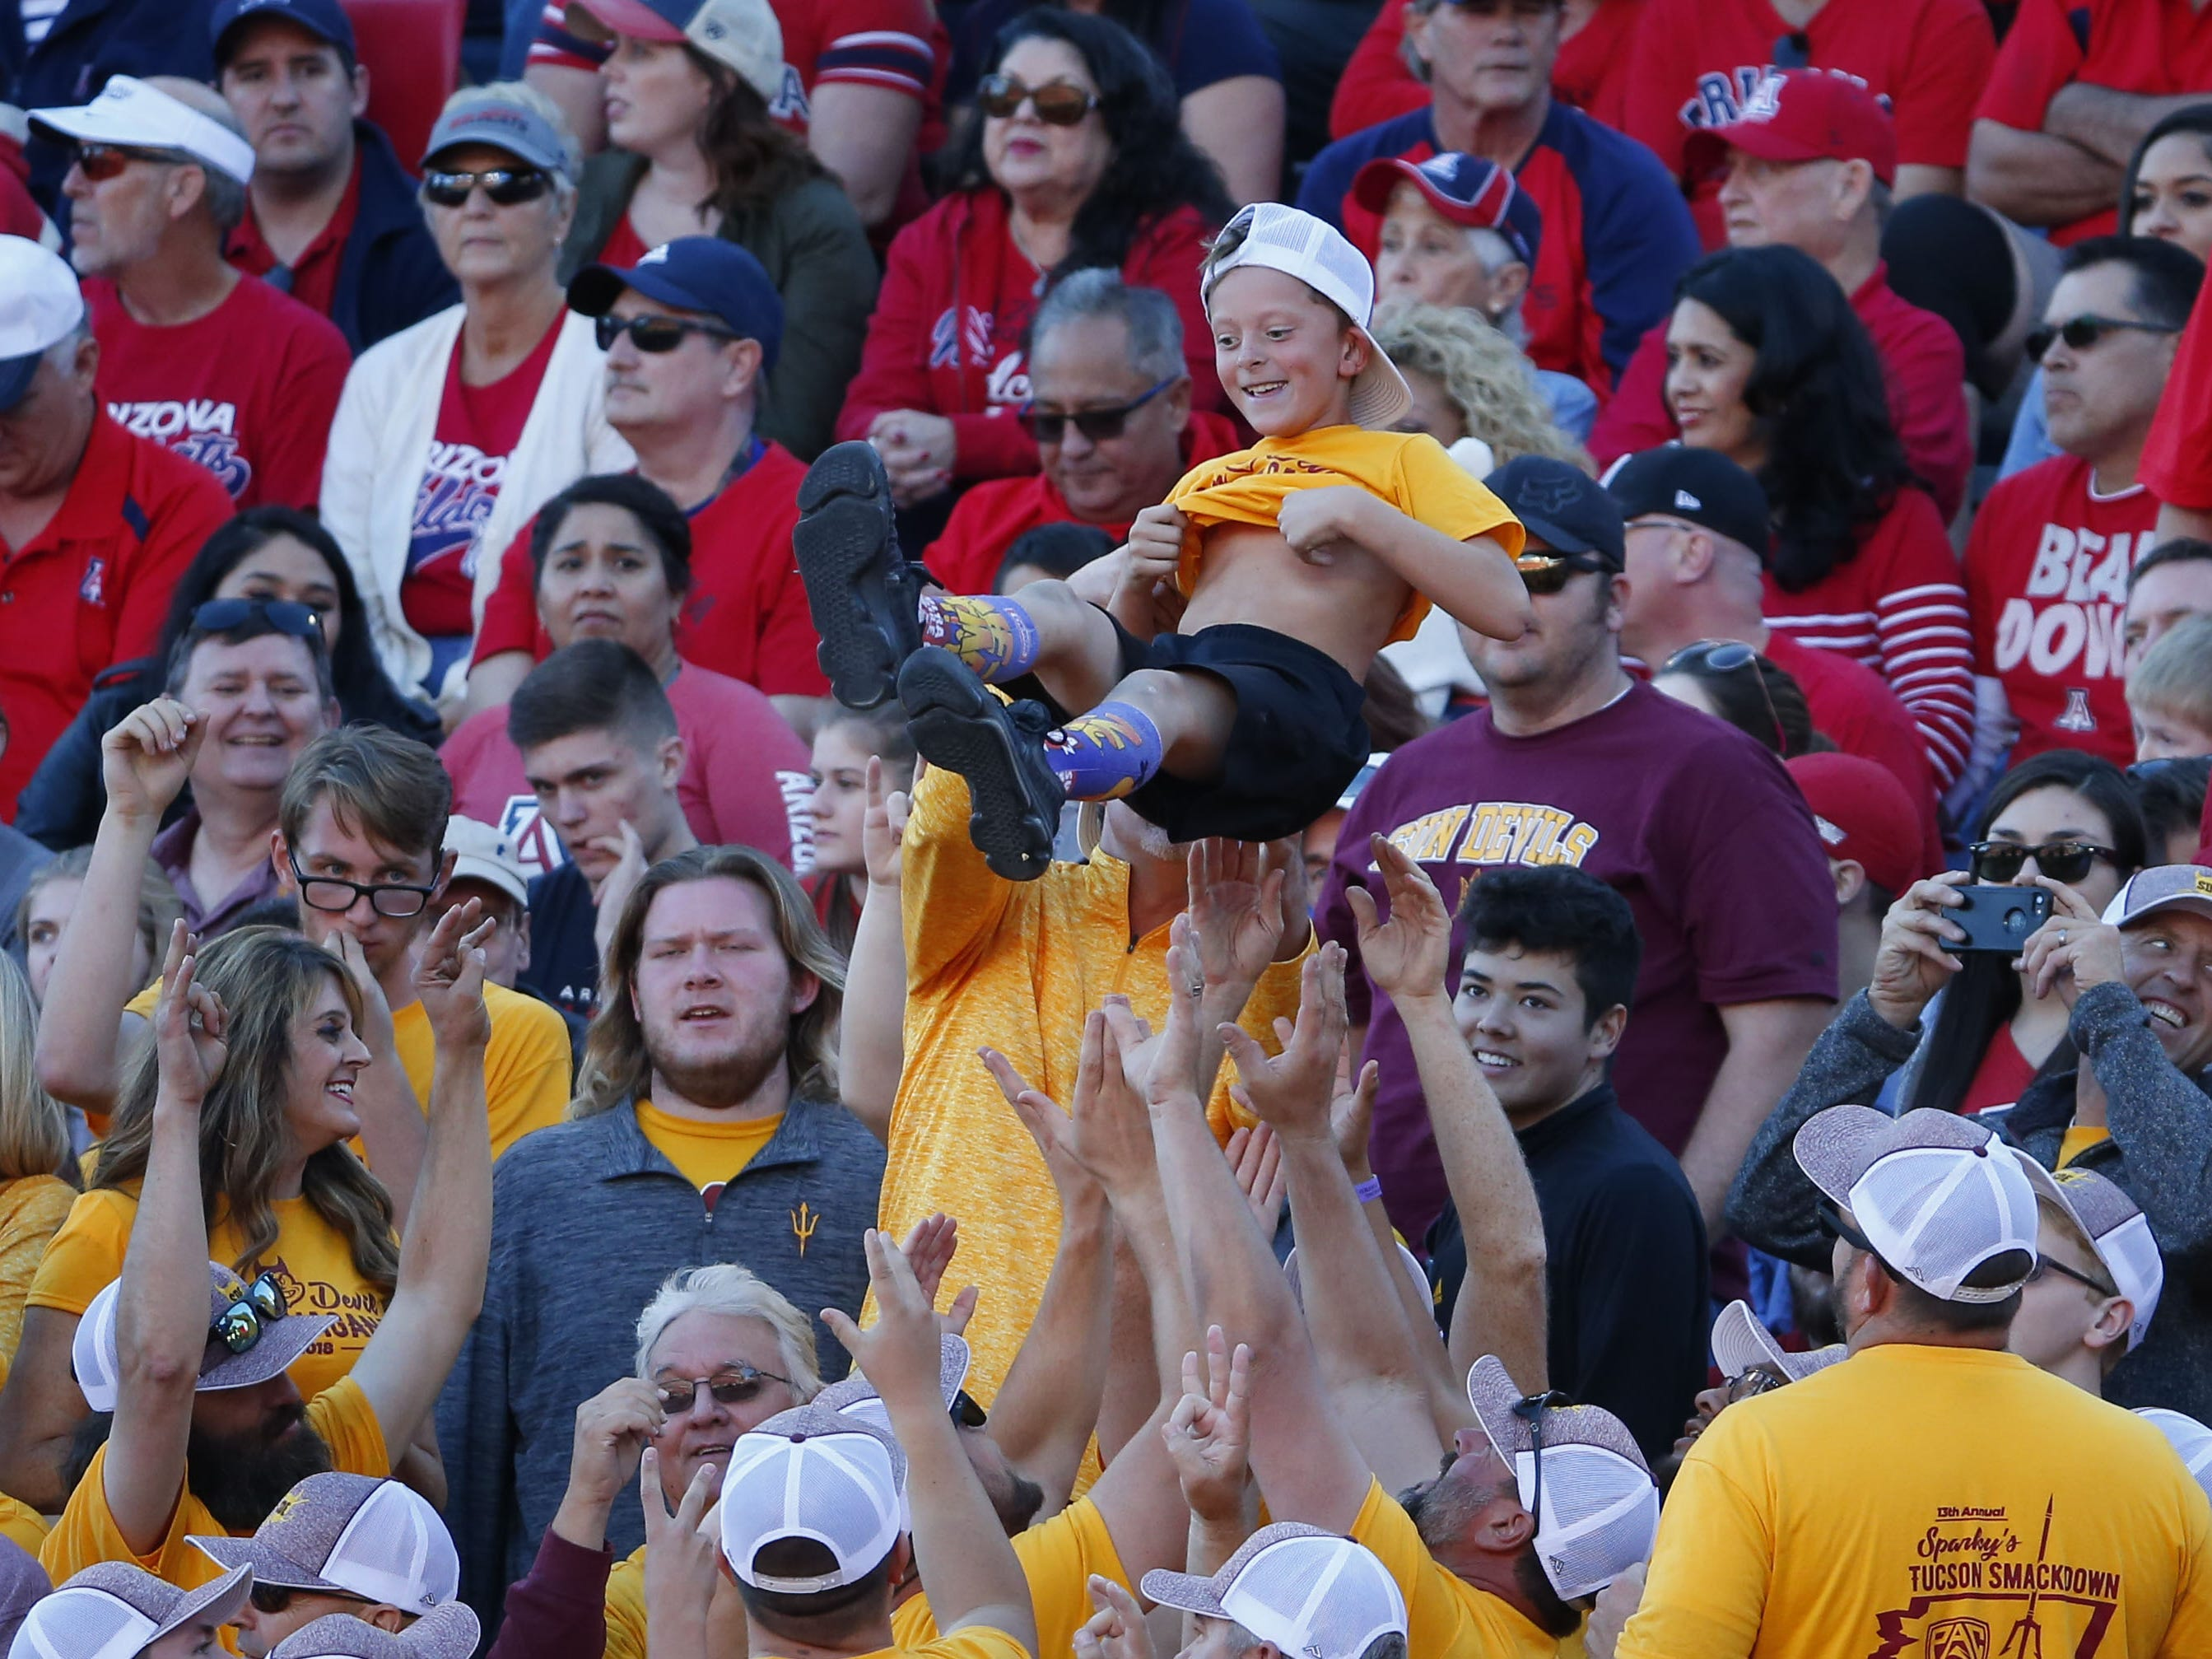 Sun Devil fans toss Brody Biggs, 7, of Mesa, after the Devils scored a touchdown during the Territorial Cup football game against the Arizona Wildcats at Arizona Stadium in Tucson on November 24.